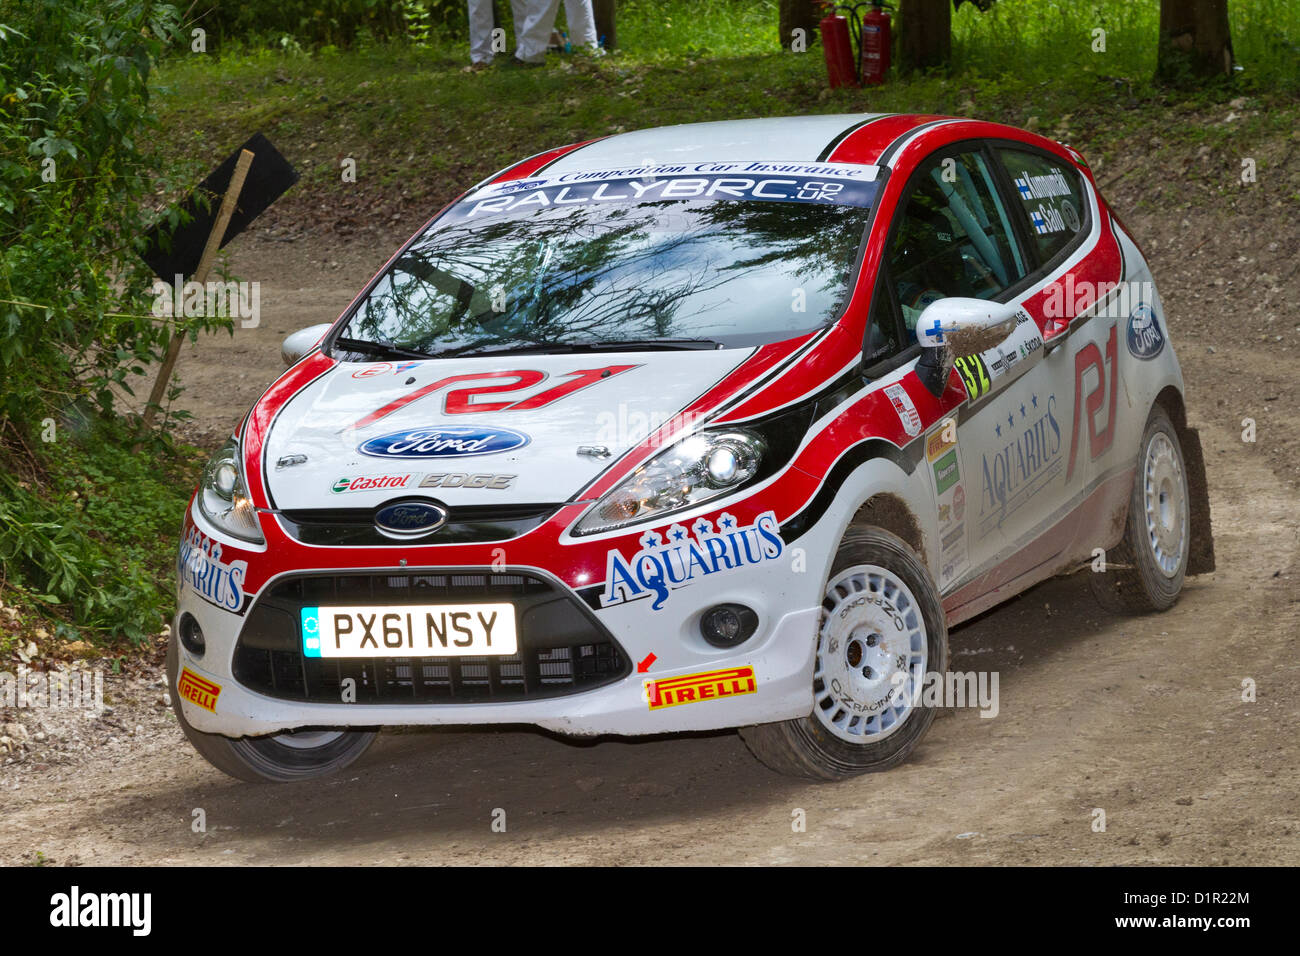 valor Capilla No autorizado  2011 Ford Fiesta R2 with driver Jussi Kumpumaki on the rally stage at Stock  Photo - Alamy